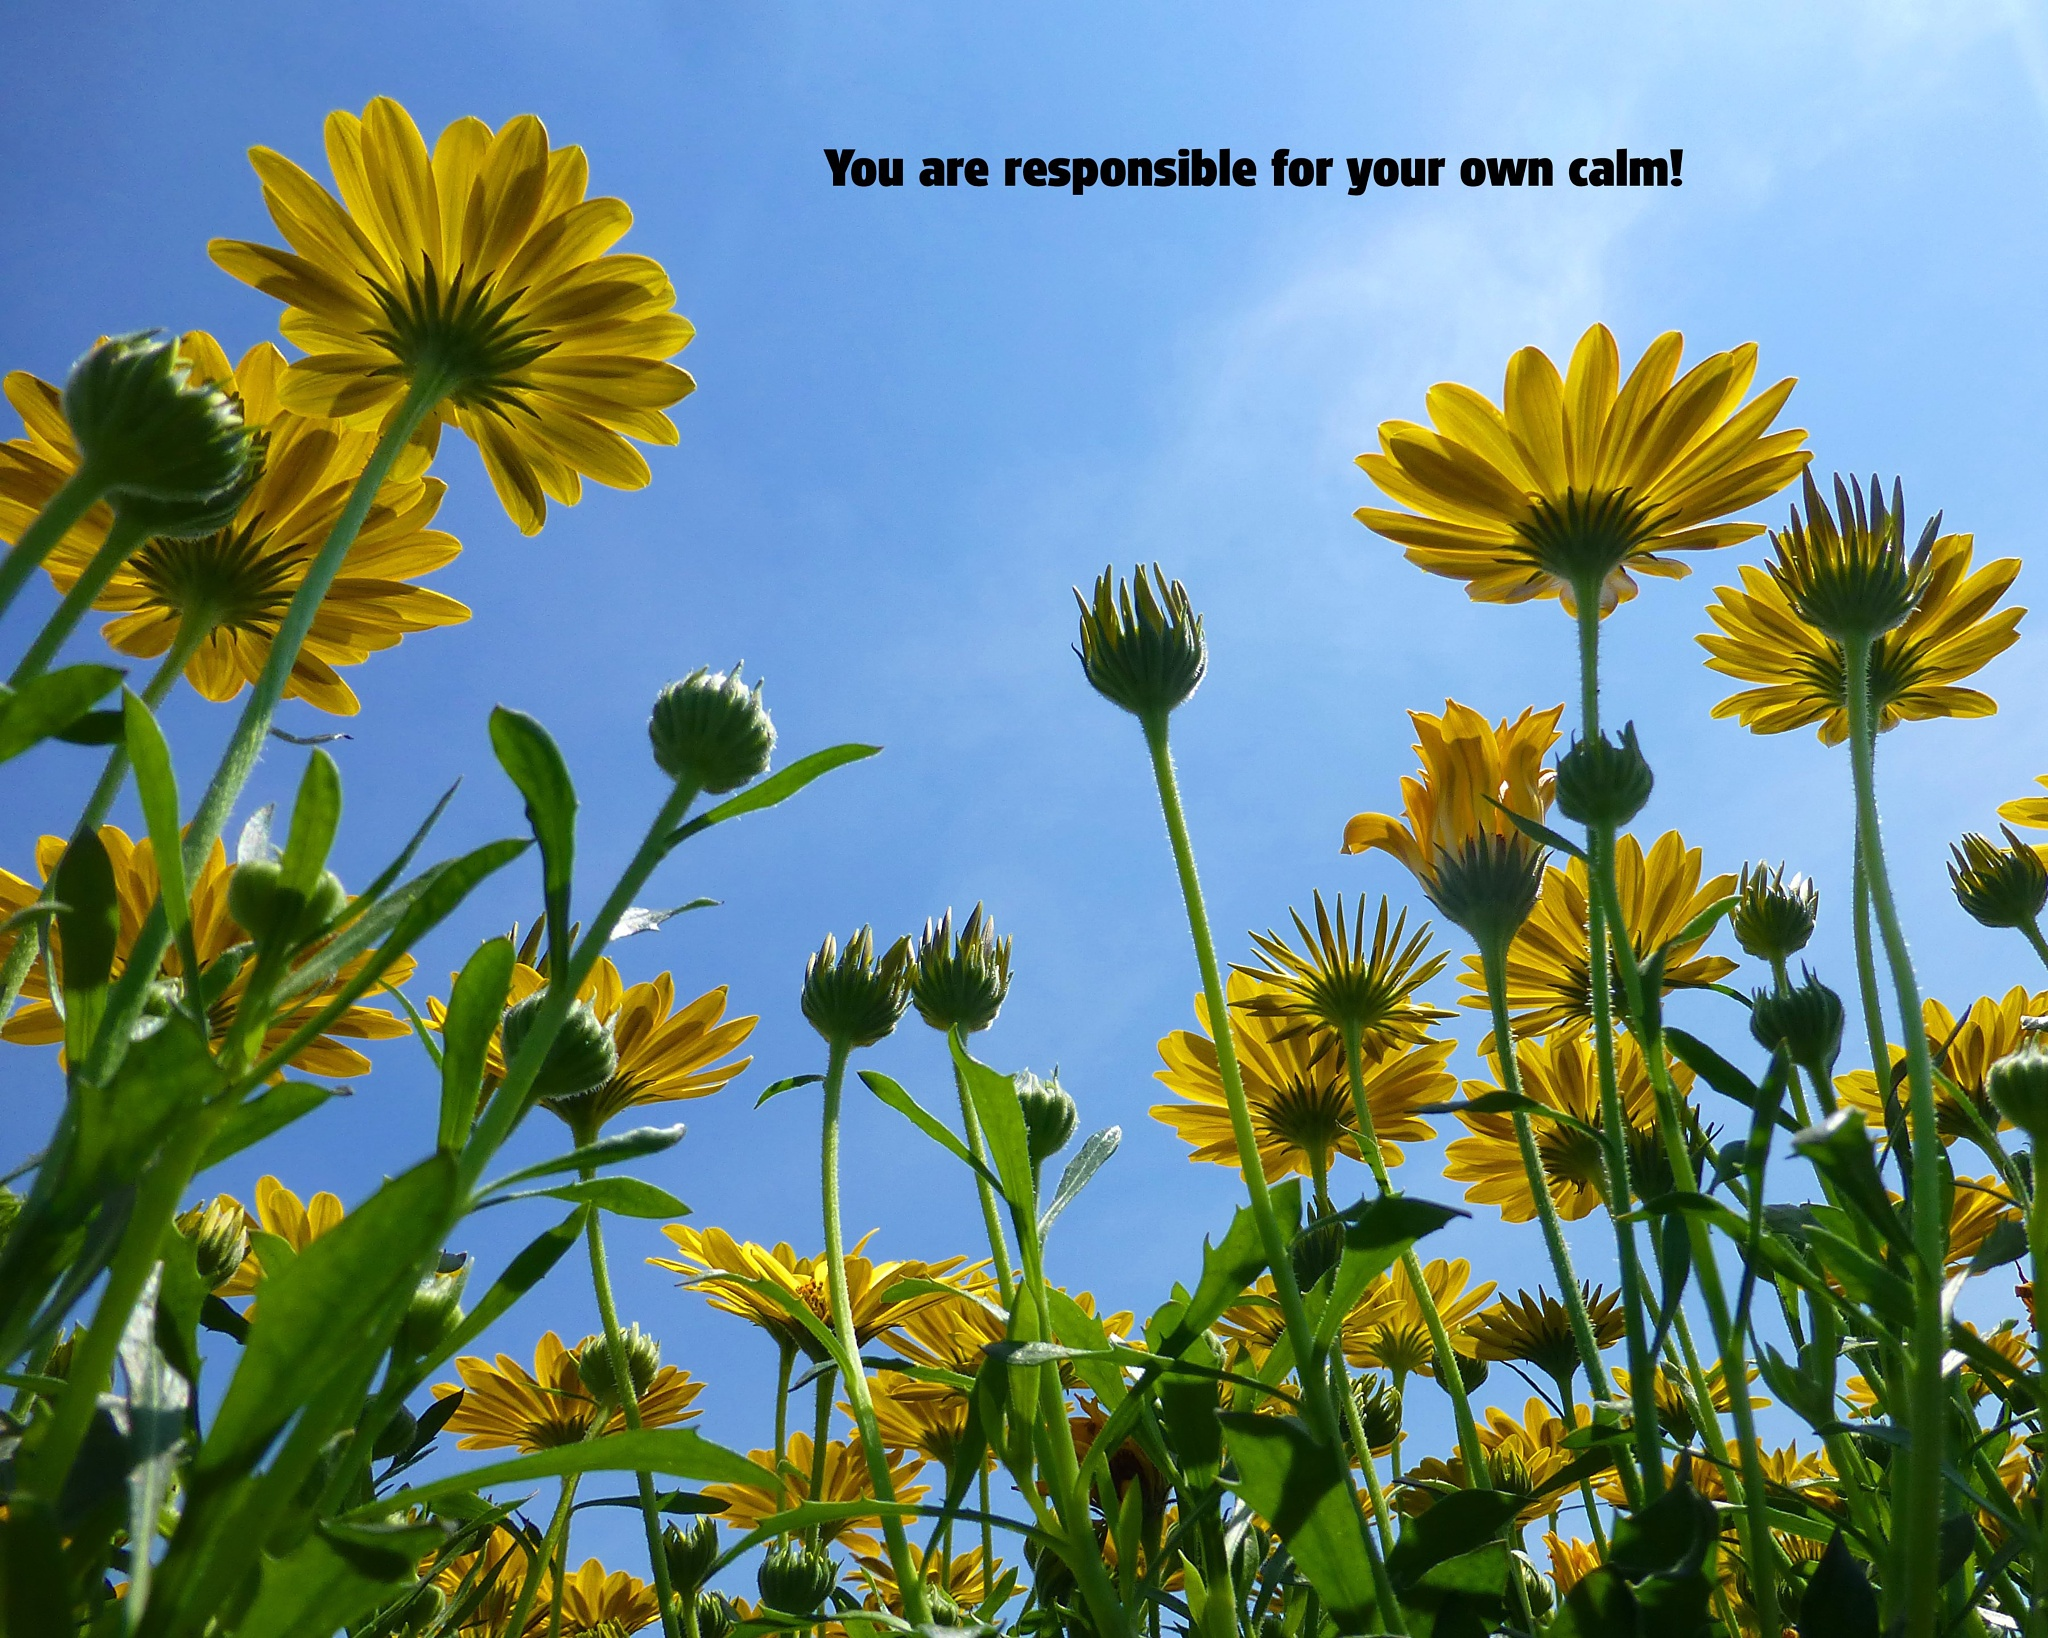 You are responsible for your own calm! by Terri Scache Harris